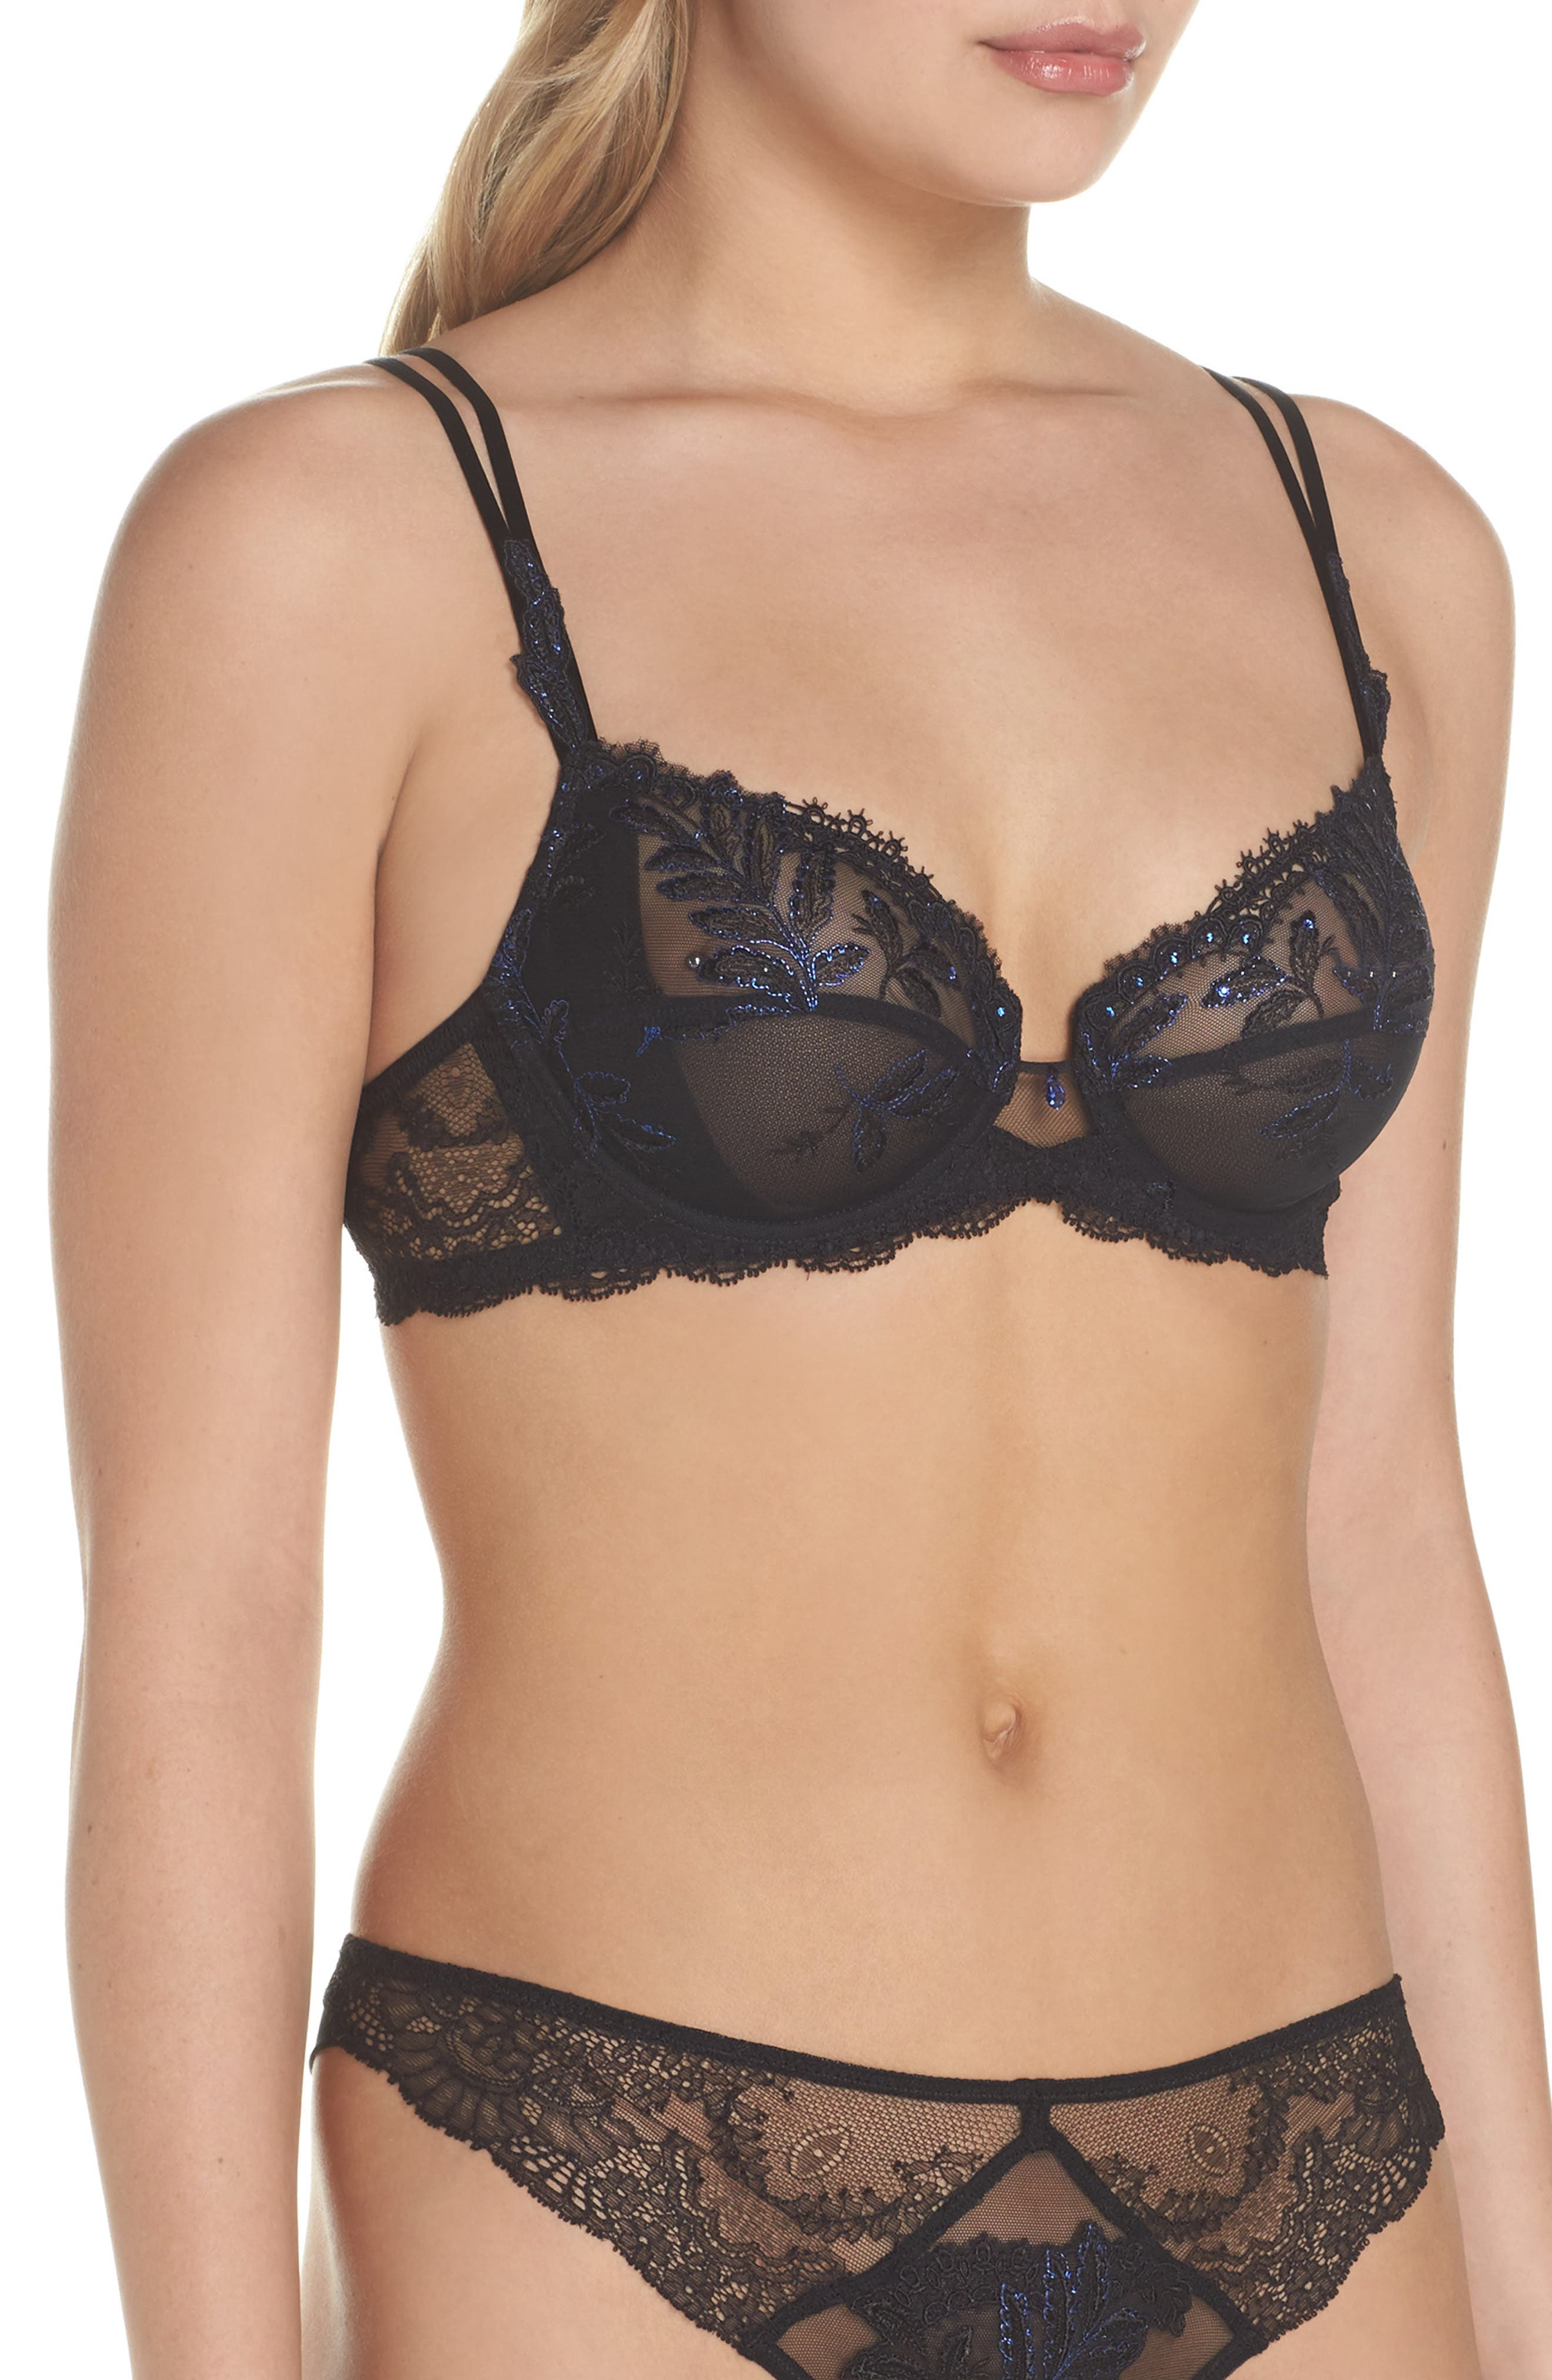 Alternate Image 3  - Epure by Lise Charmel Caresse Fougere Underwire Bra